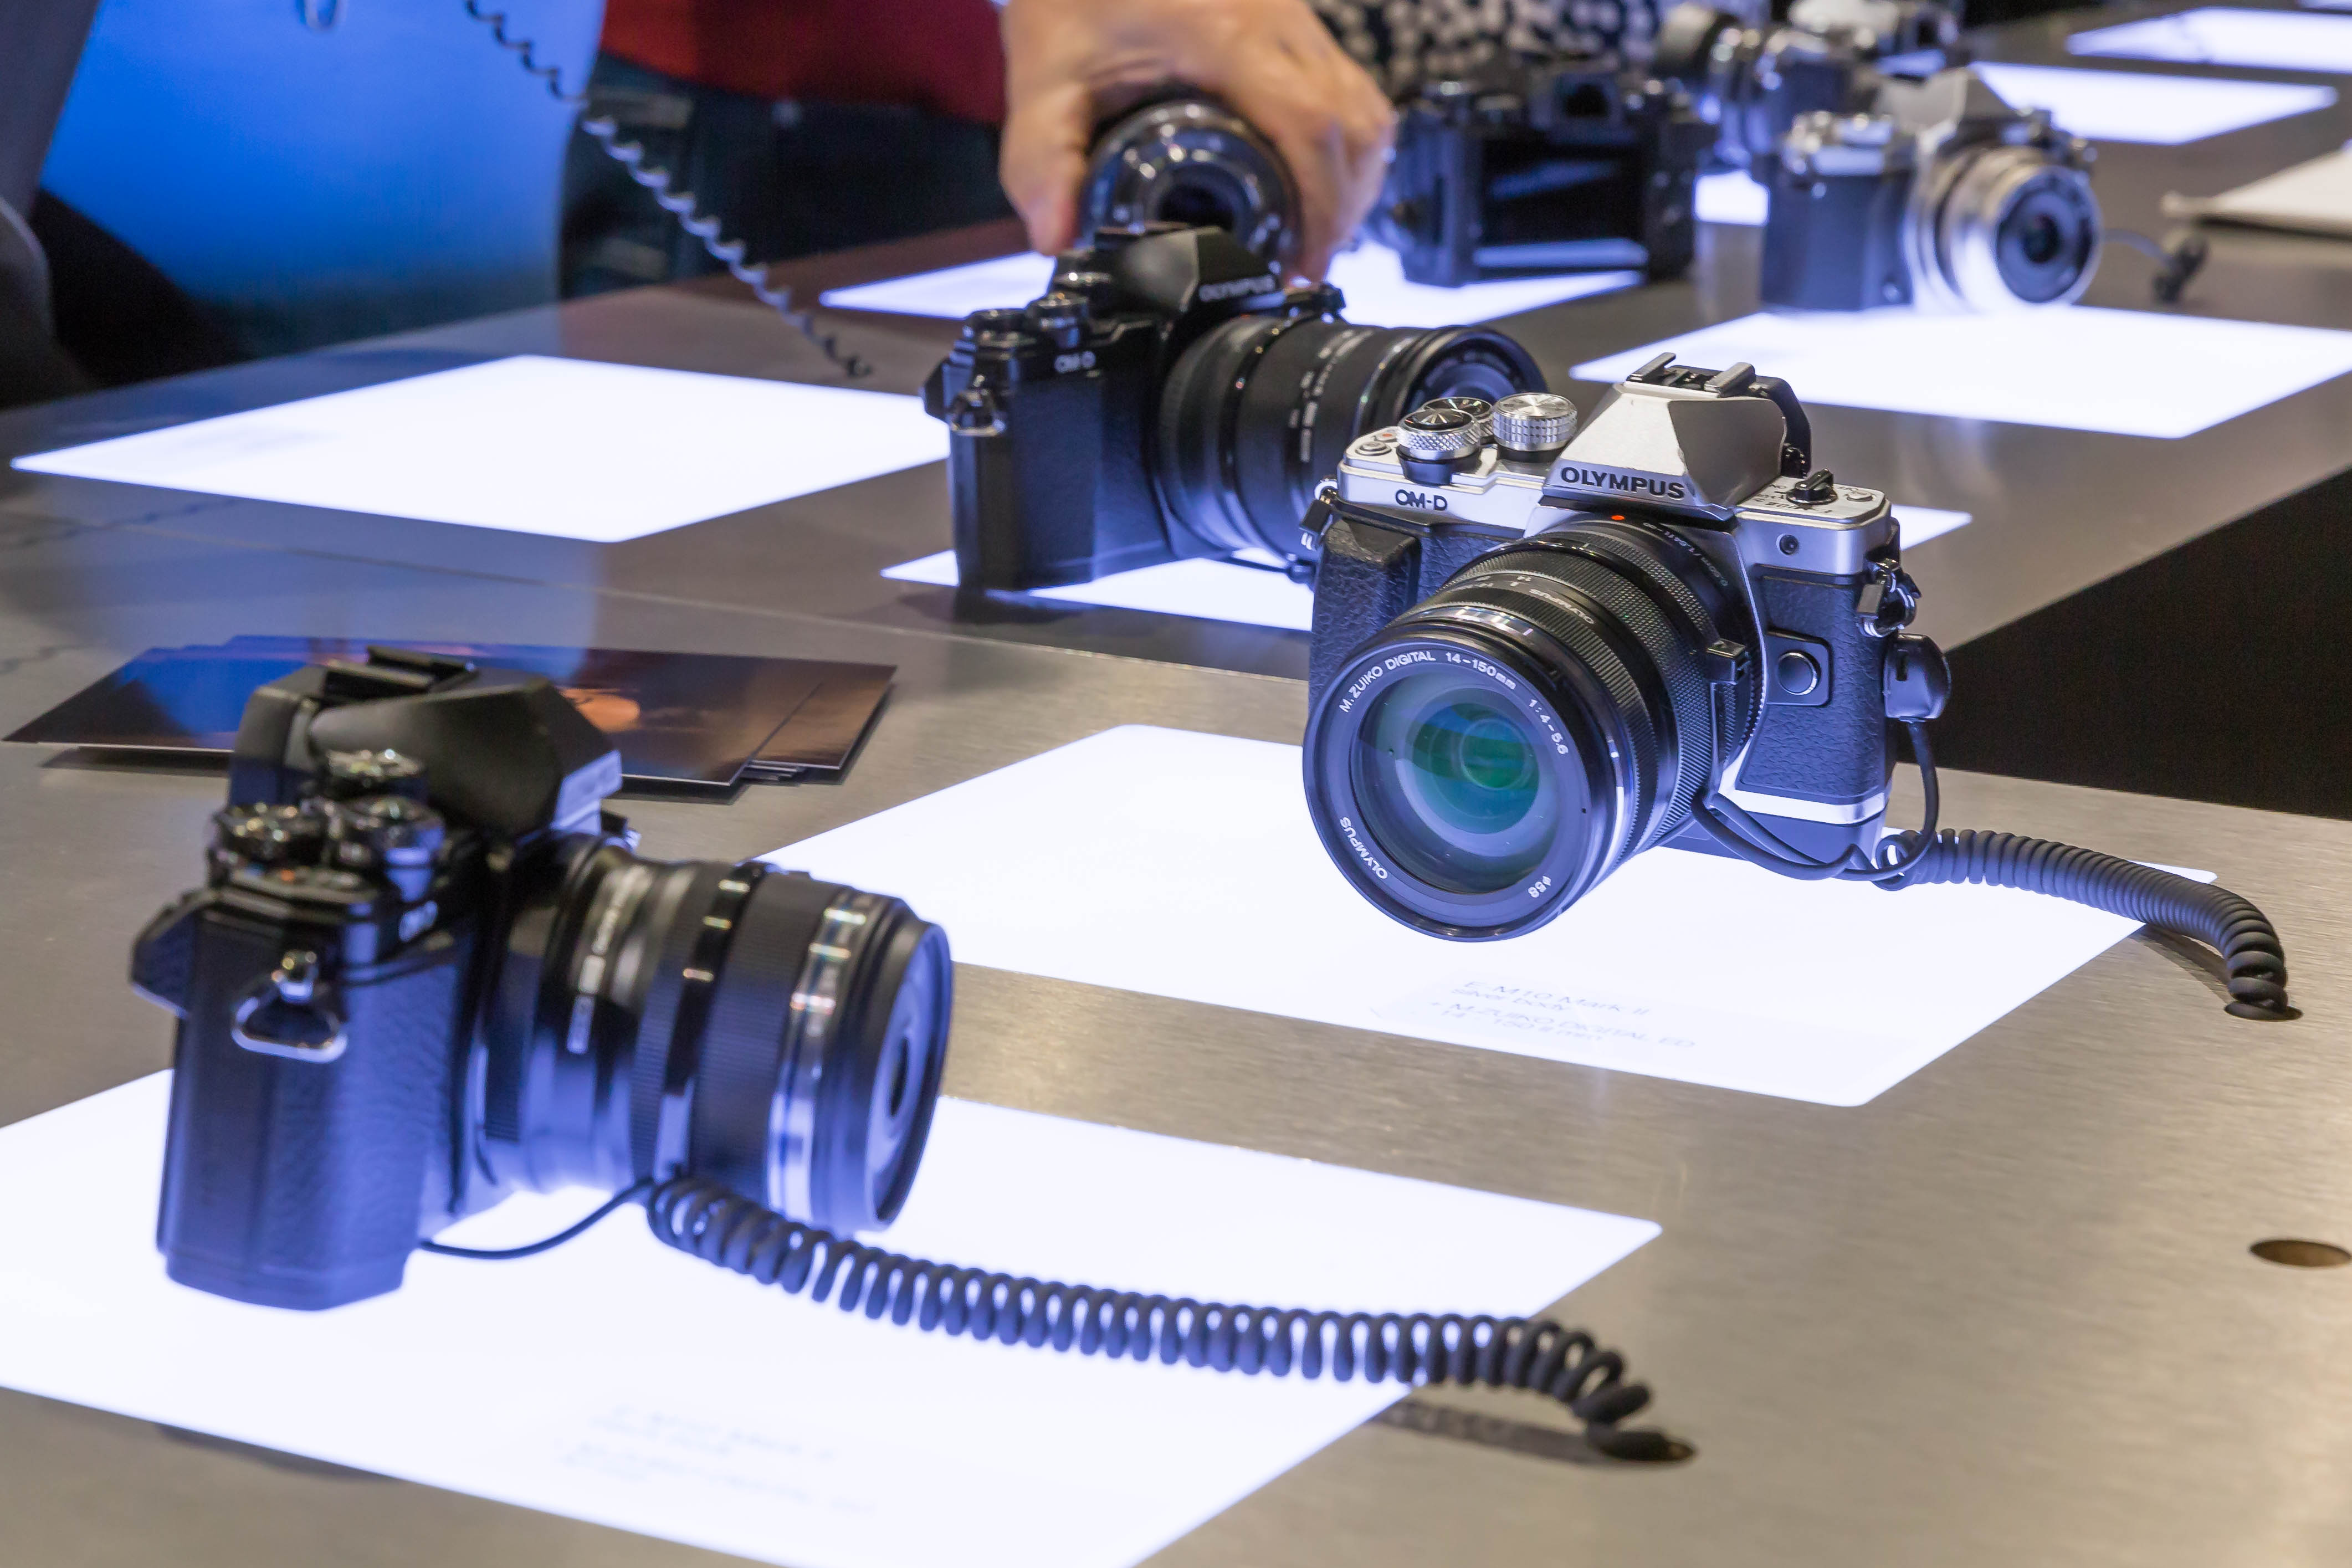 Image of Olympus cameras at Photokina